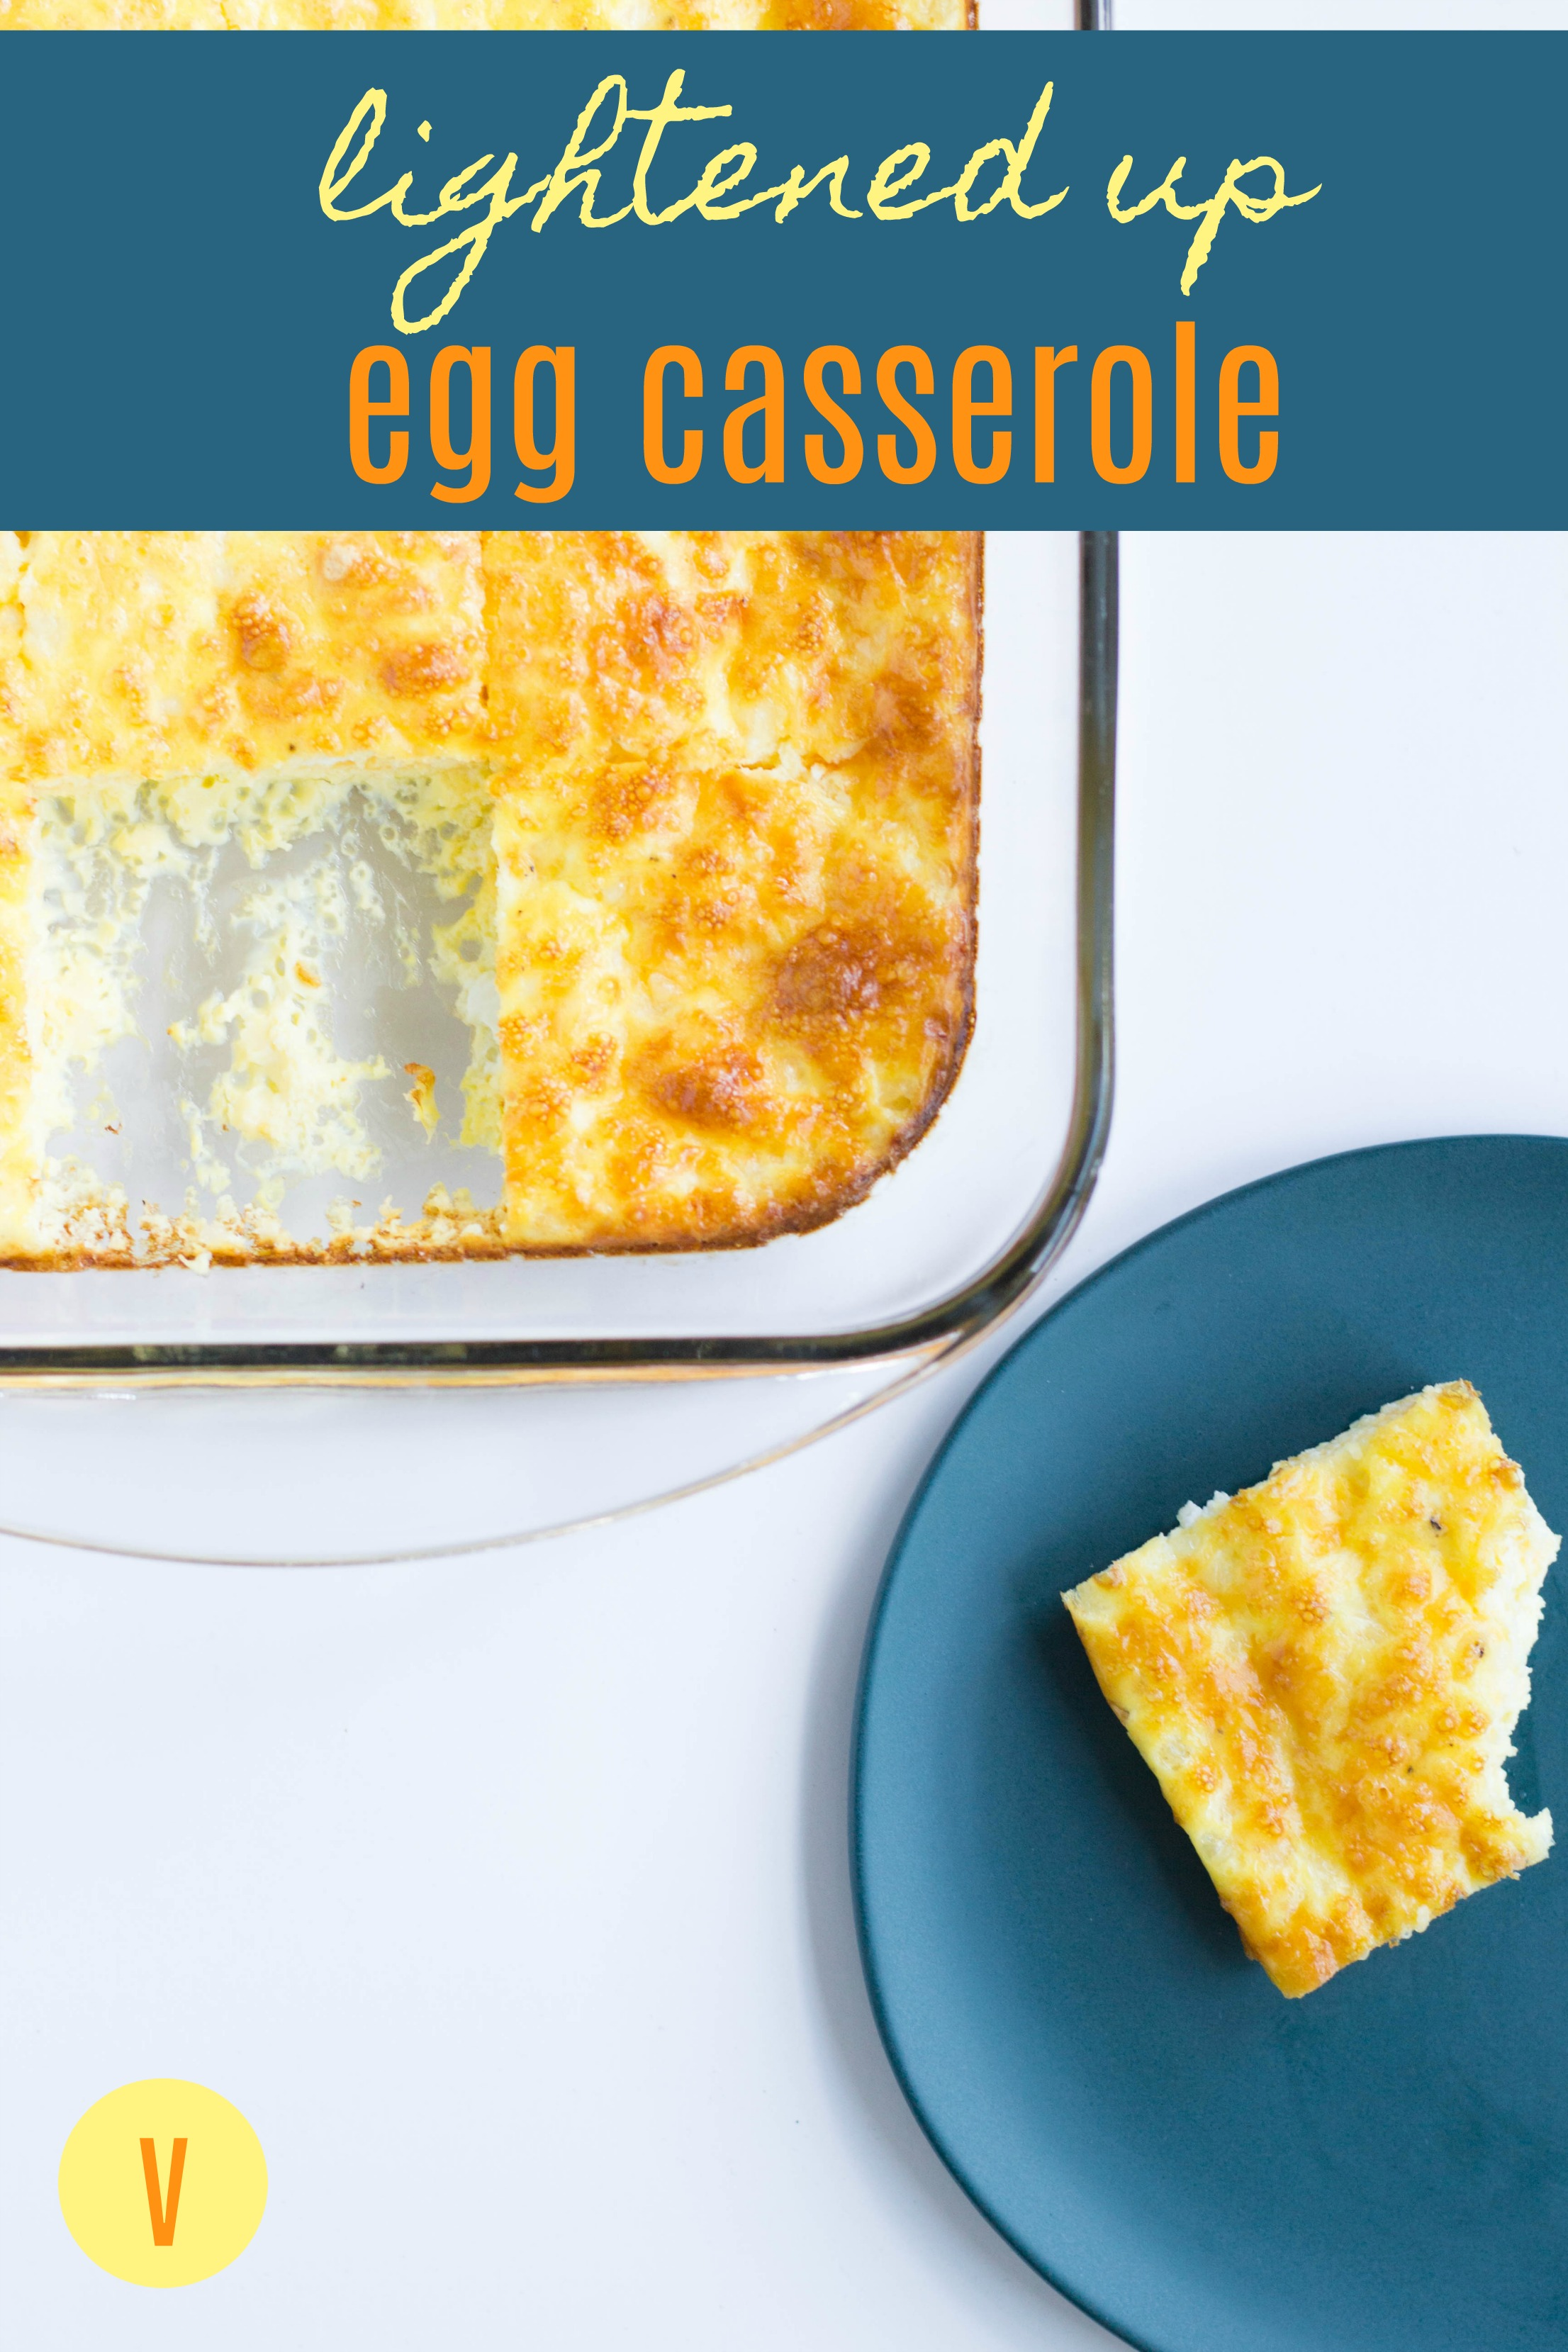 This healthy egg casserole is easy to make! It's the perfect make-ahead breakfast, and great for brunches too! Healthy Egg Casserole | Vegetarian by Stacey Mattinson Nutrition